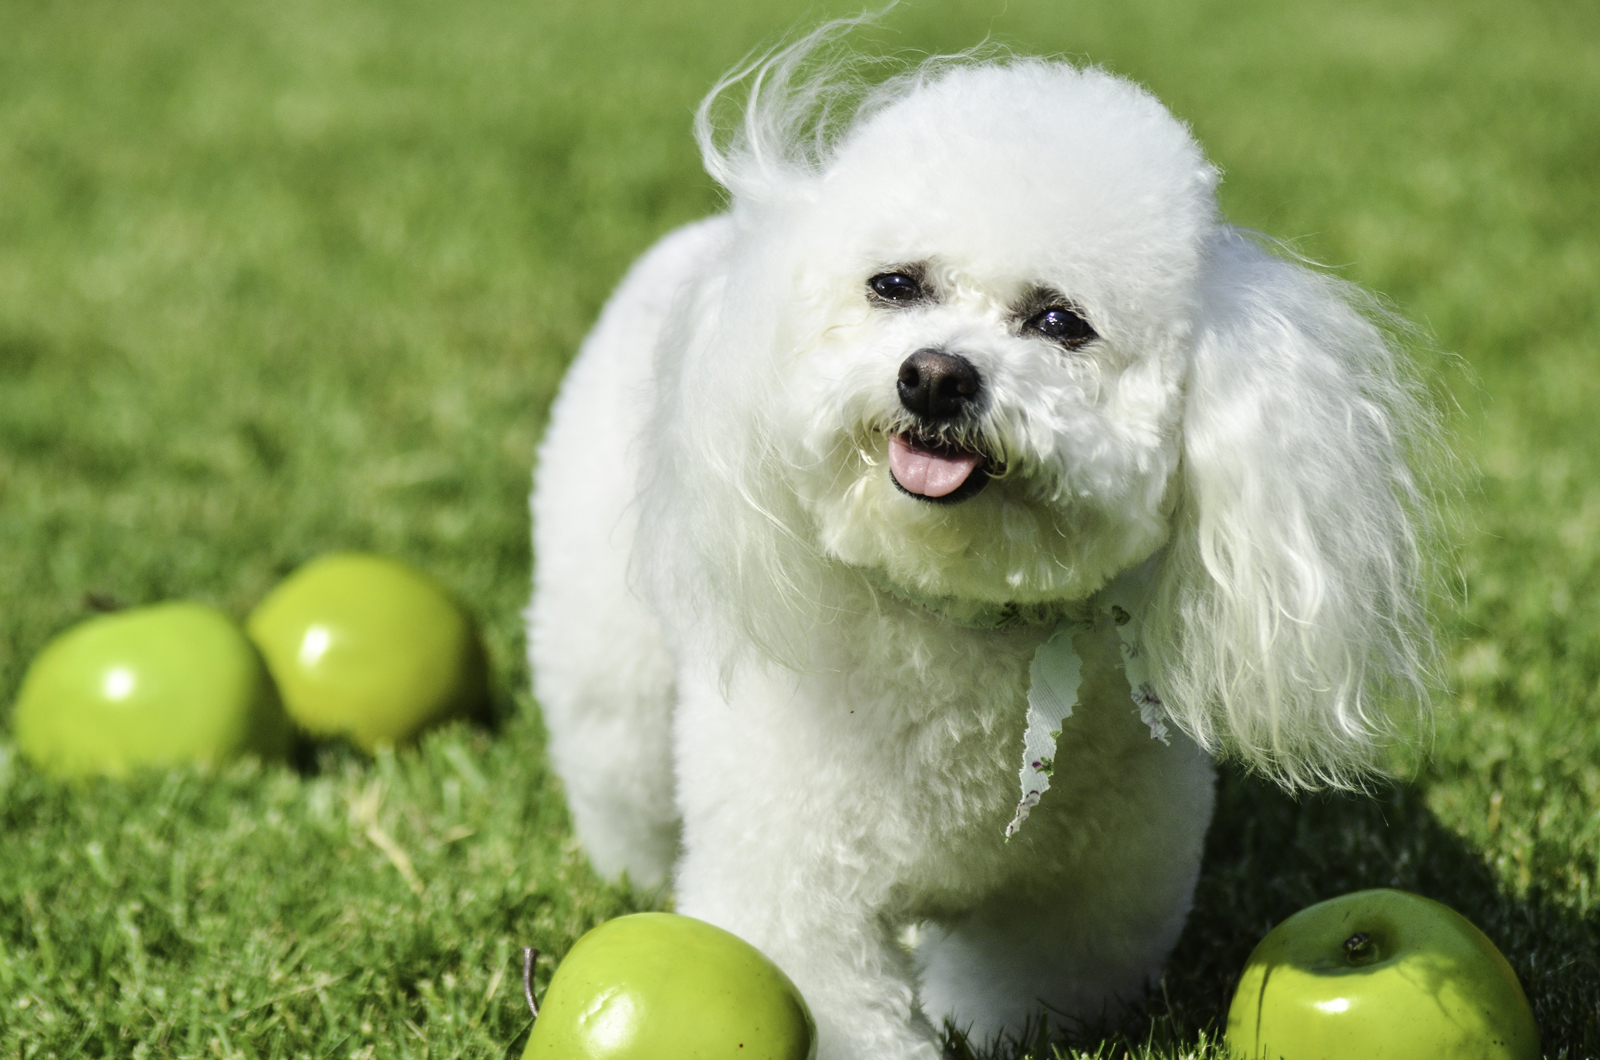 A Bichon Frise dog walking inbetween apples on some grass